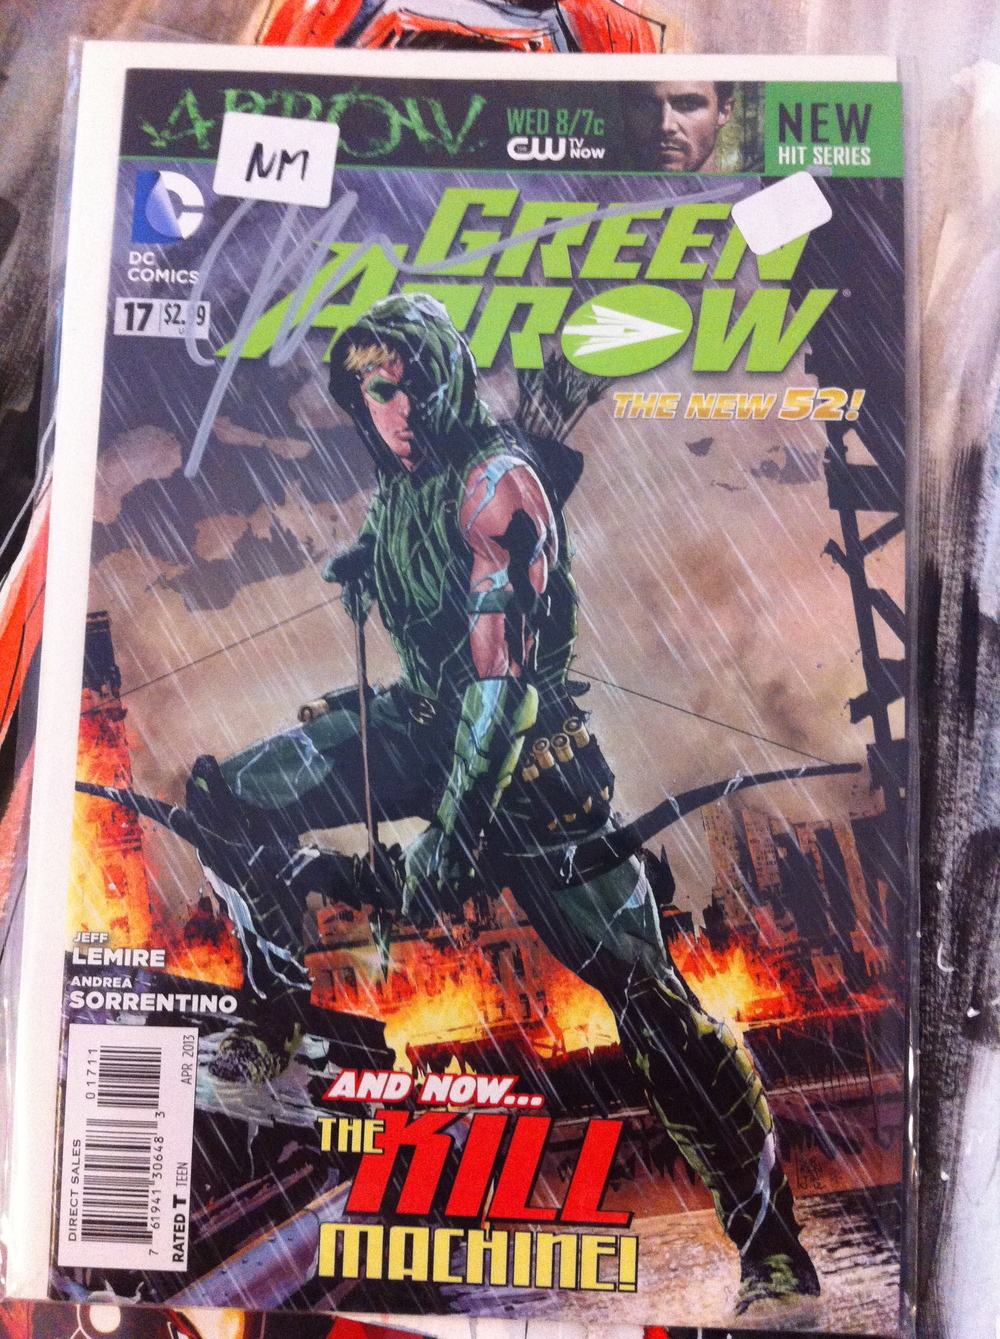 GREEN ARROW #17-34 + 23.1 + Future's End #1 COmplete Jeff Lemire/Andrea Sorrentino run on GA. INcludes from CW Diggle's 1st Appearance and Komodo's first appearance. Doesn't hurt that the 1st issue is Signed by Jeff Lemire!